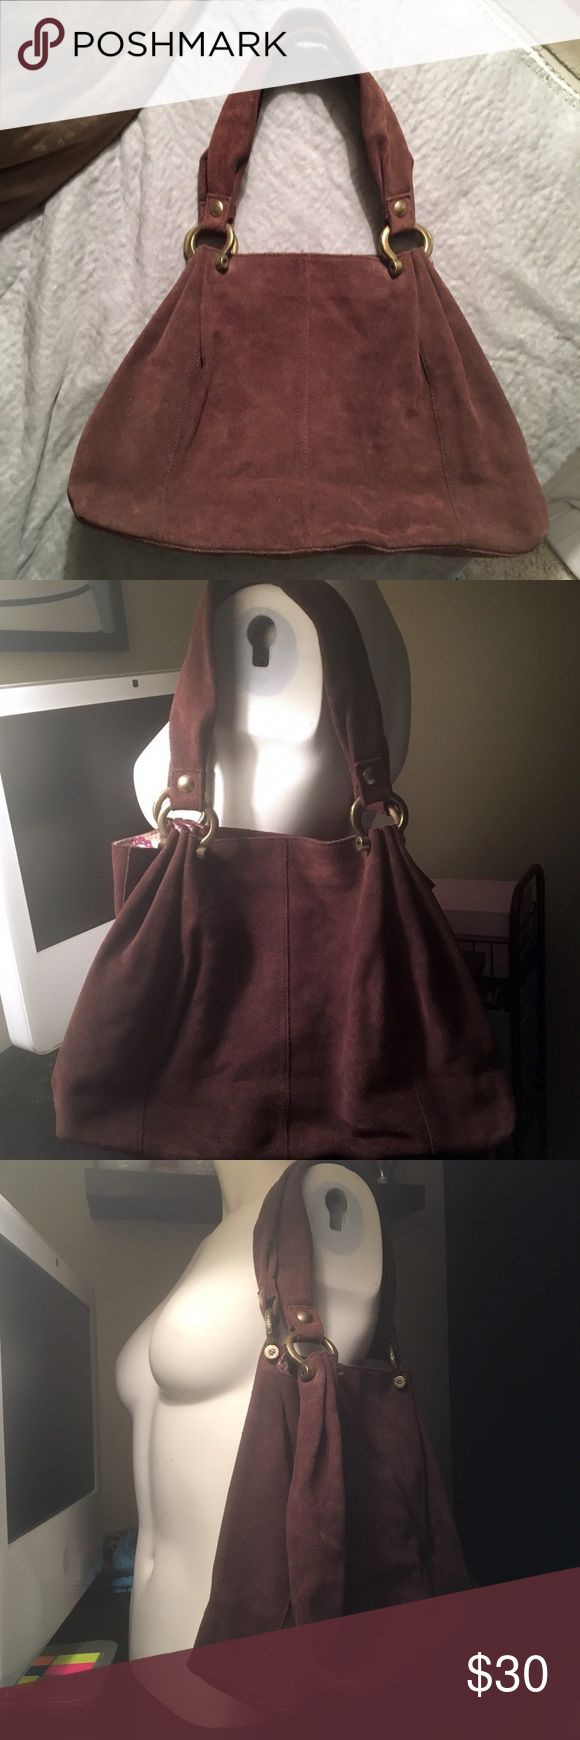 Suede gap handbag Brown suede gap handbag. In good condition mag snap closure. Has a small rip inside and outside on bottom of bag that's been sewn together. I took pictures where are you can see it. GAP Bags